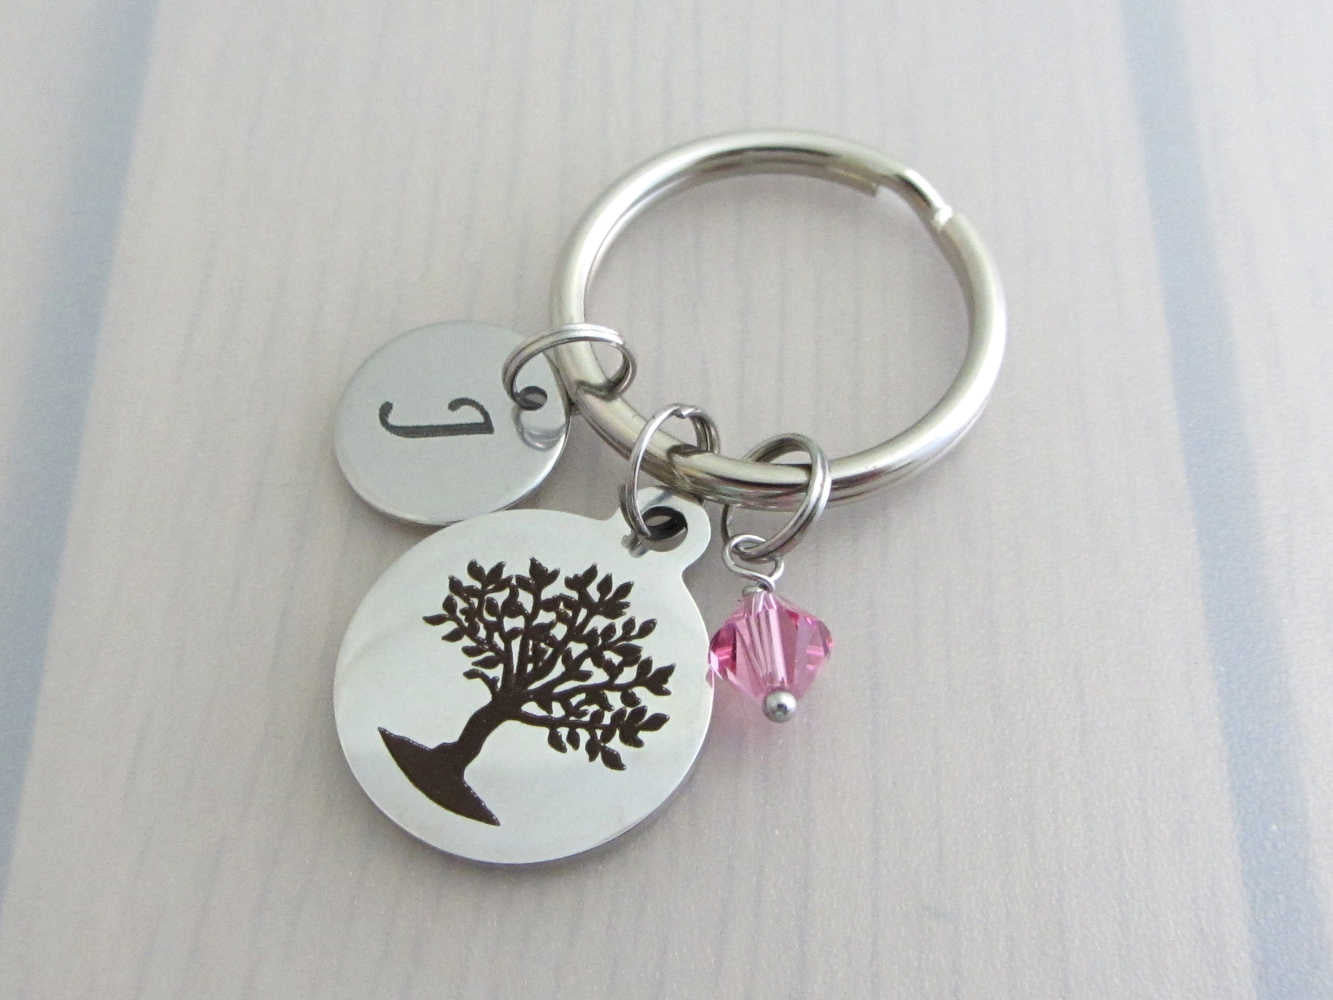 laser engraved capital initial letter disc charm, laser engraved tree charm and a pink crystal charm on a keyring